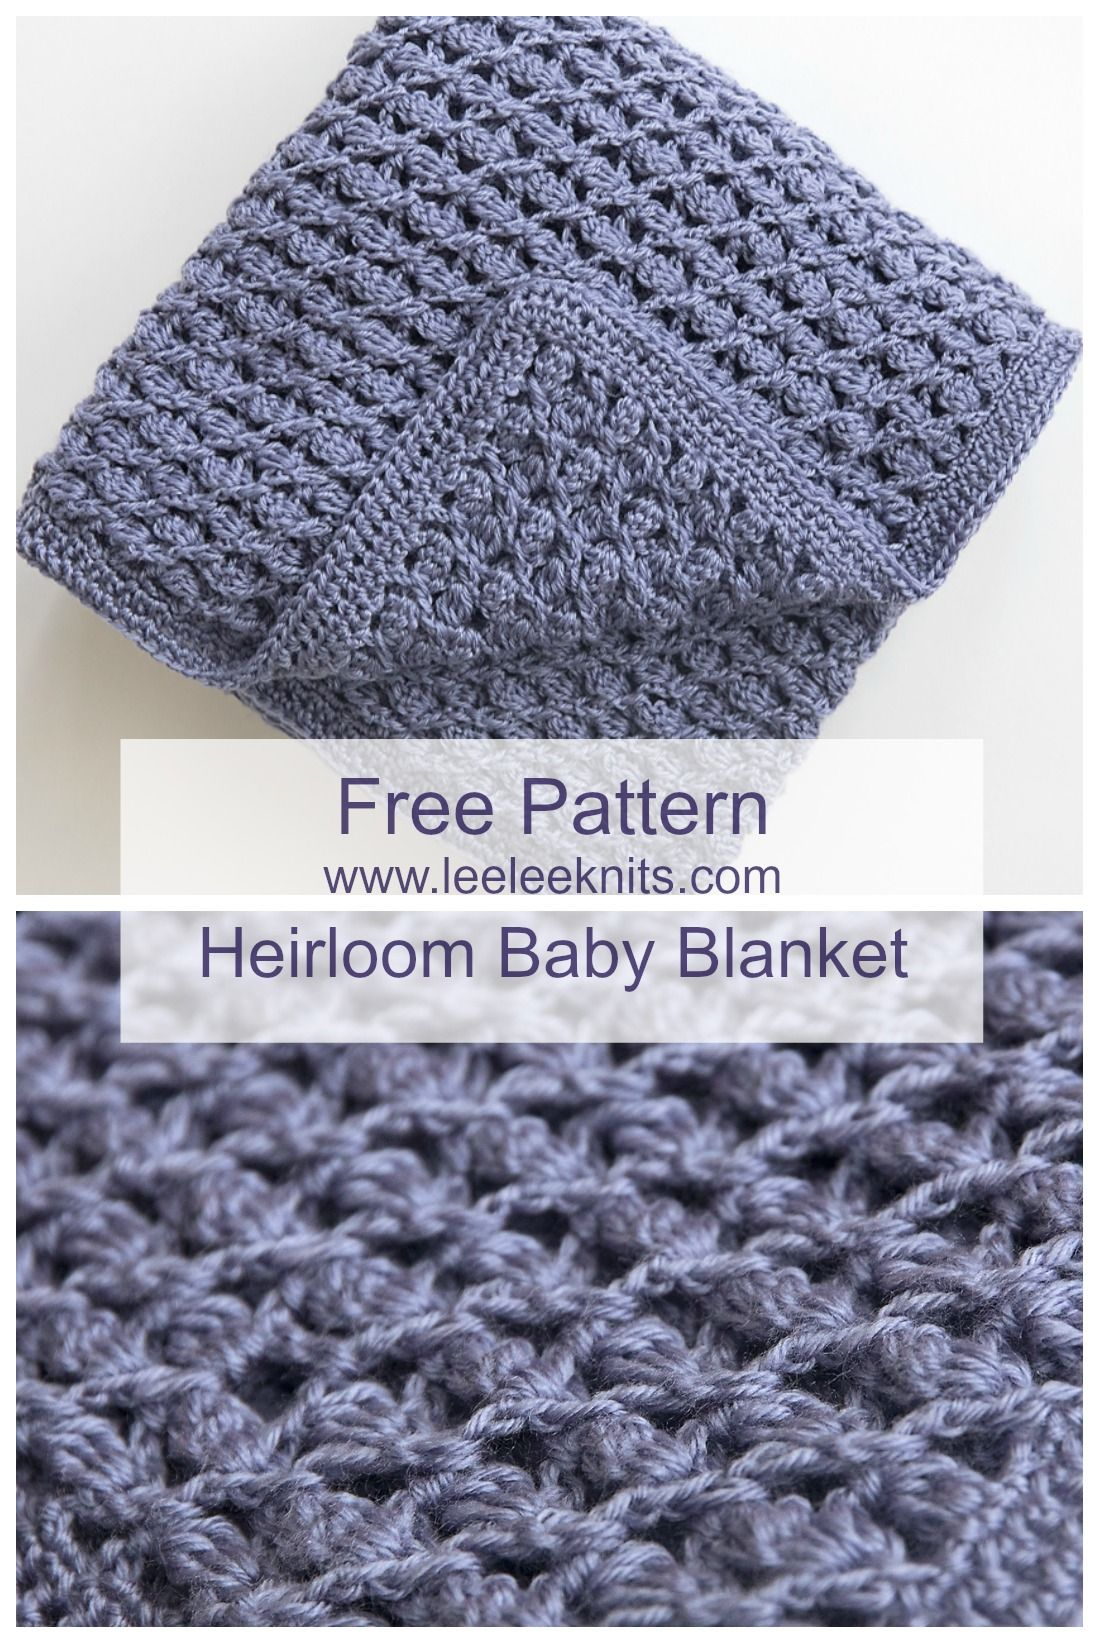 Free Baby Knitting Patterns Pinterest Crochet Patterns For Ba Blankets Free Heirloom Ba Blanket Crochet